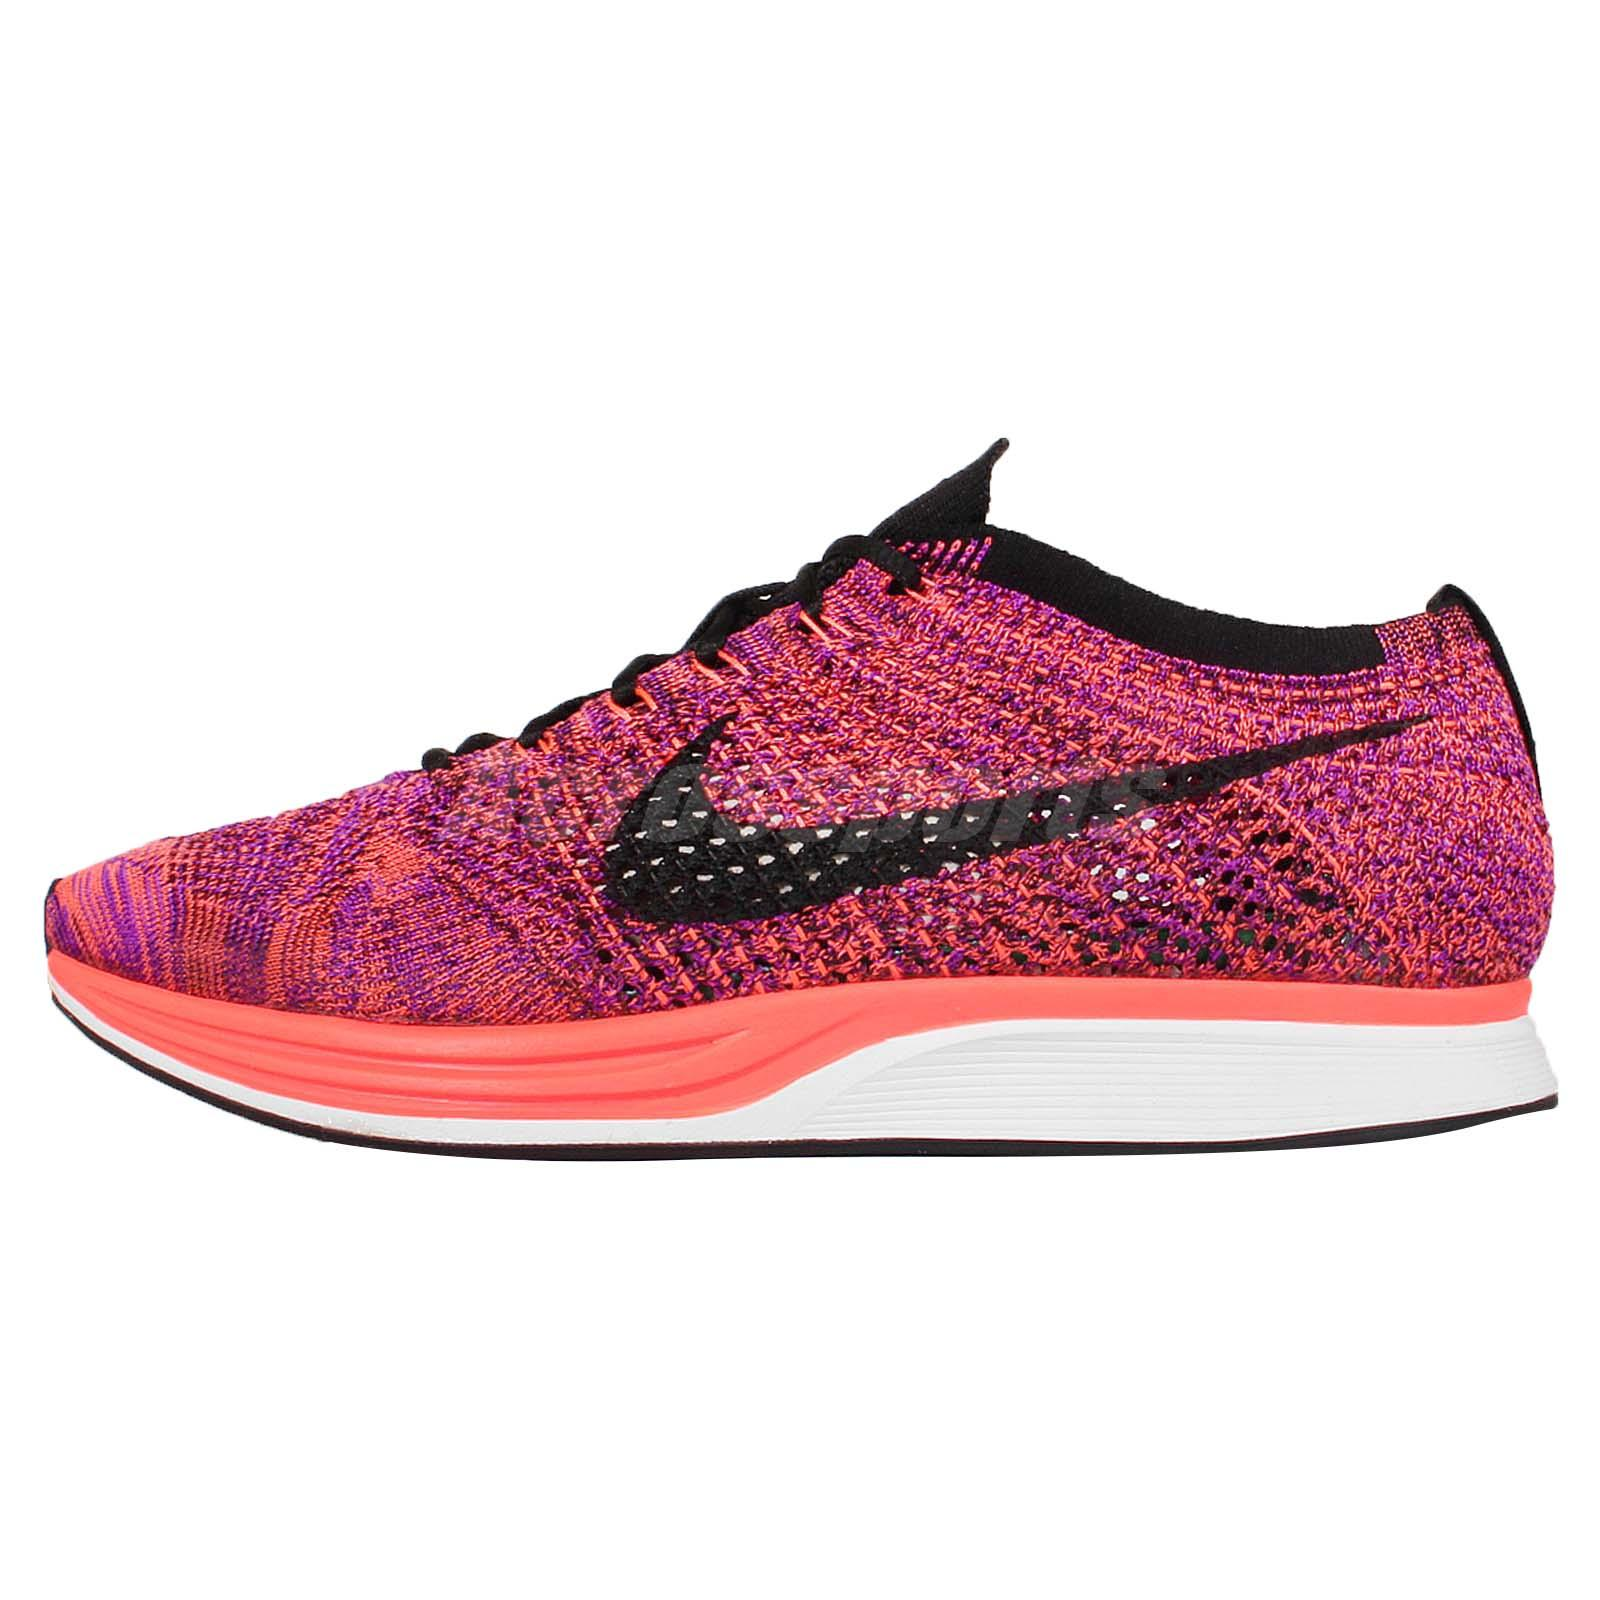 ... Nike Flyknit Racer Orange Purple Mens Running Shoes Sneakers Trainers  526628-008